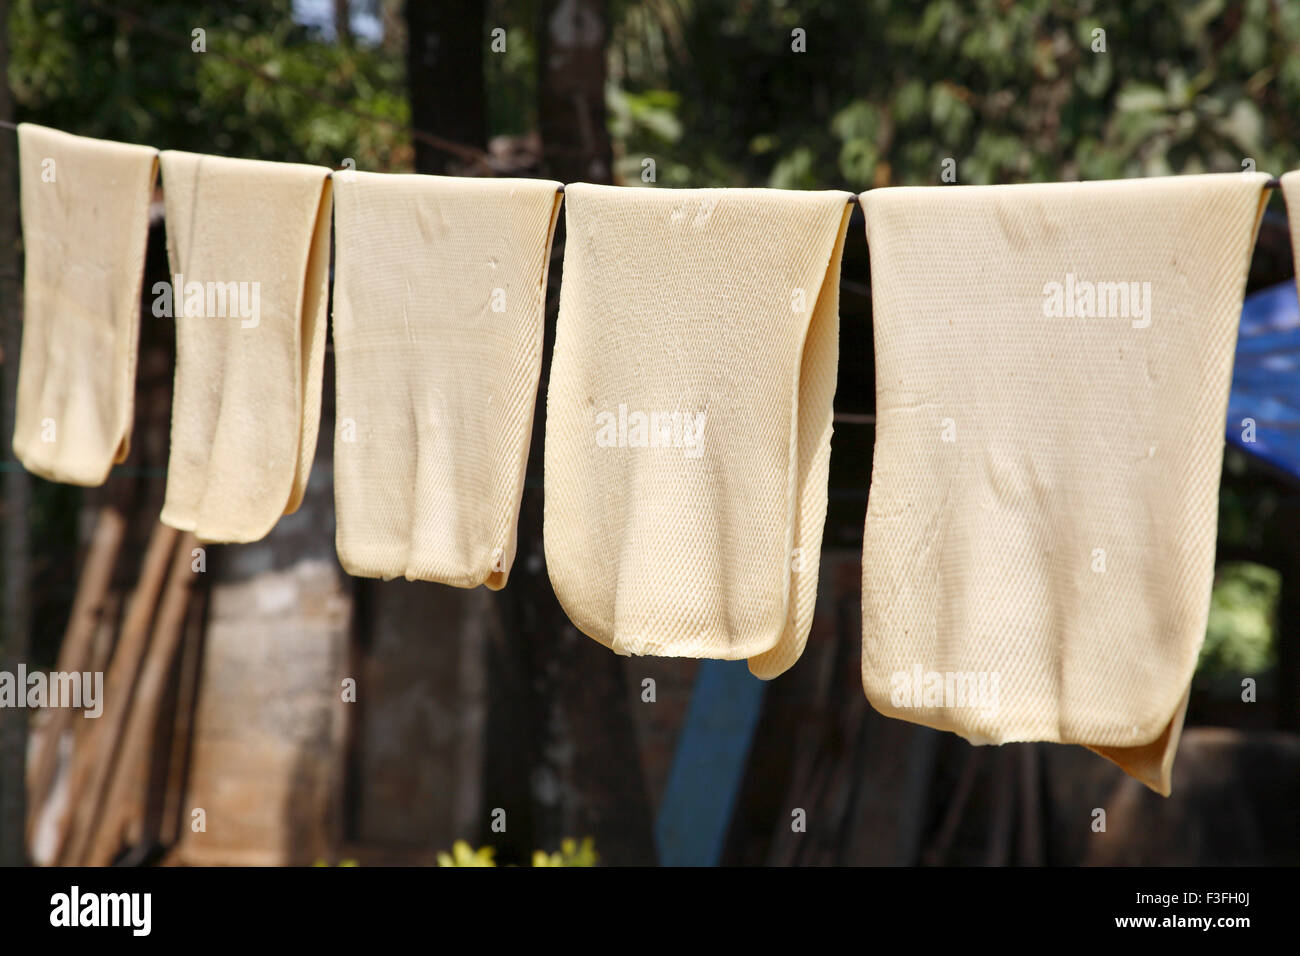 Rubber Raw Rubber Sheets Kept For Drying Kerala India